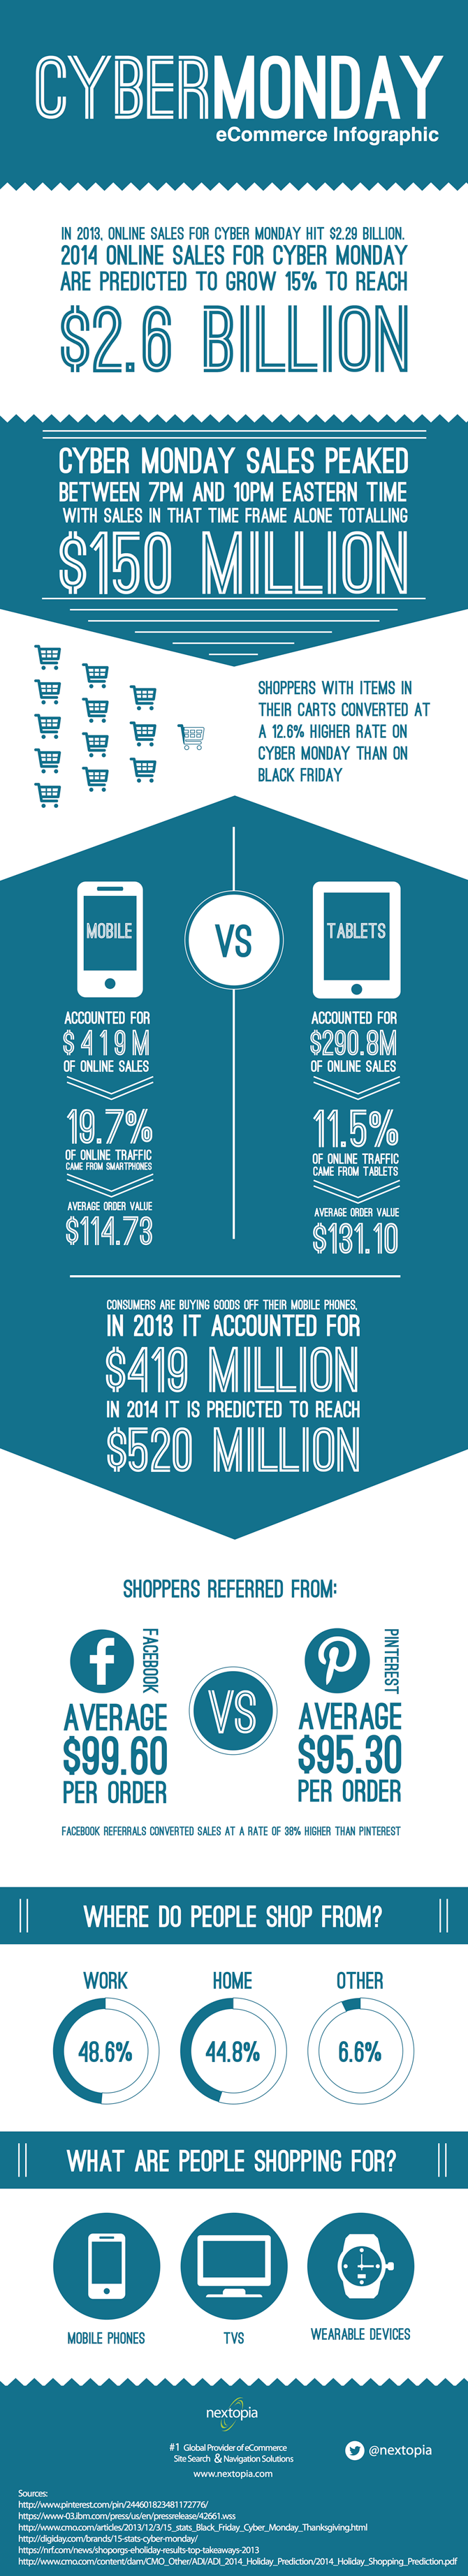 cyber-monday-ecommerce-infographic[1]